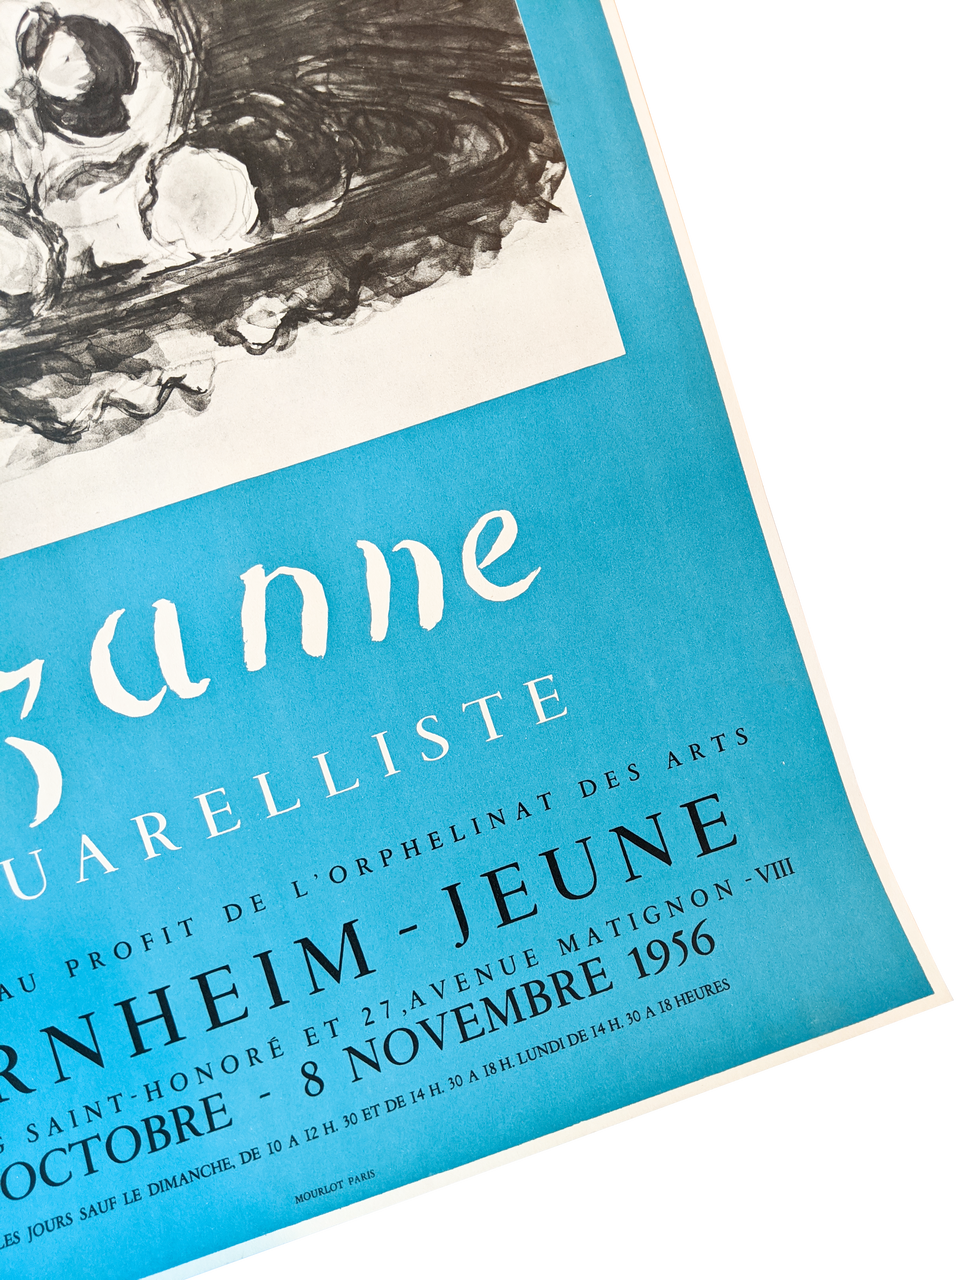 Original Exhibition Poster By Cezanne - Aquarelliste 1956